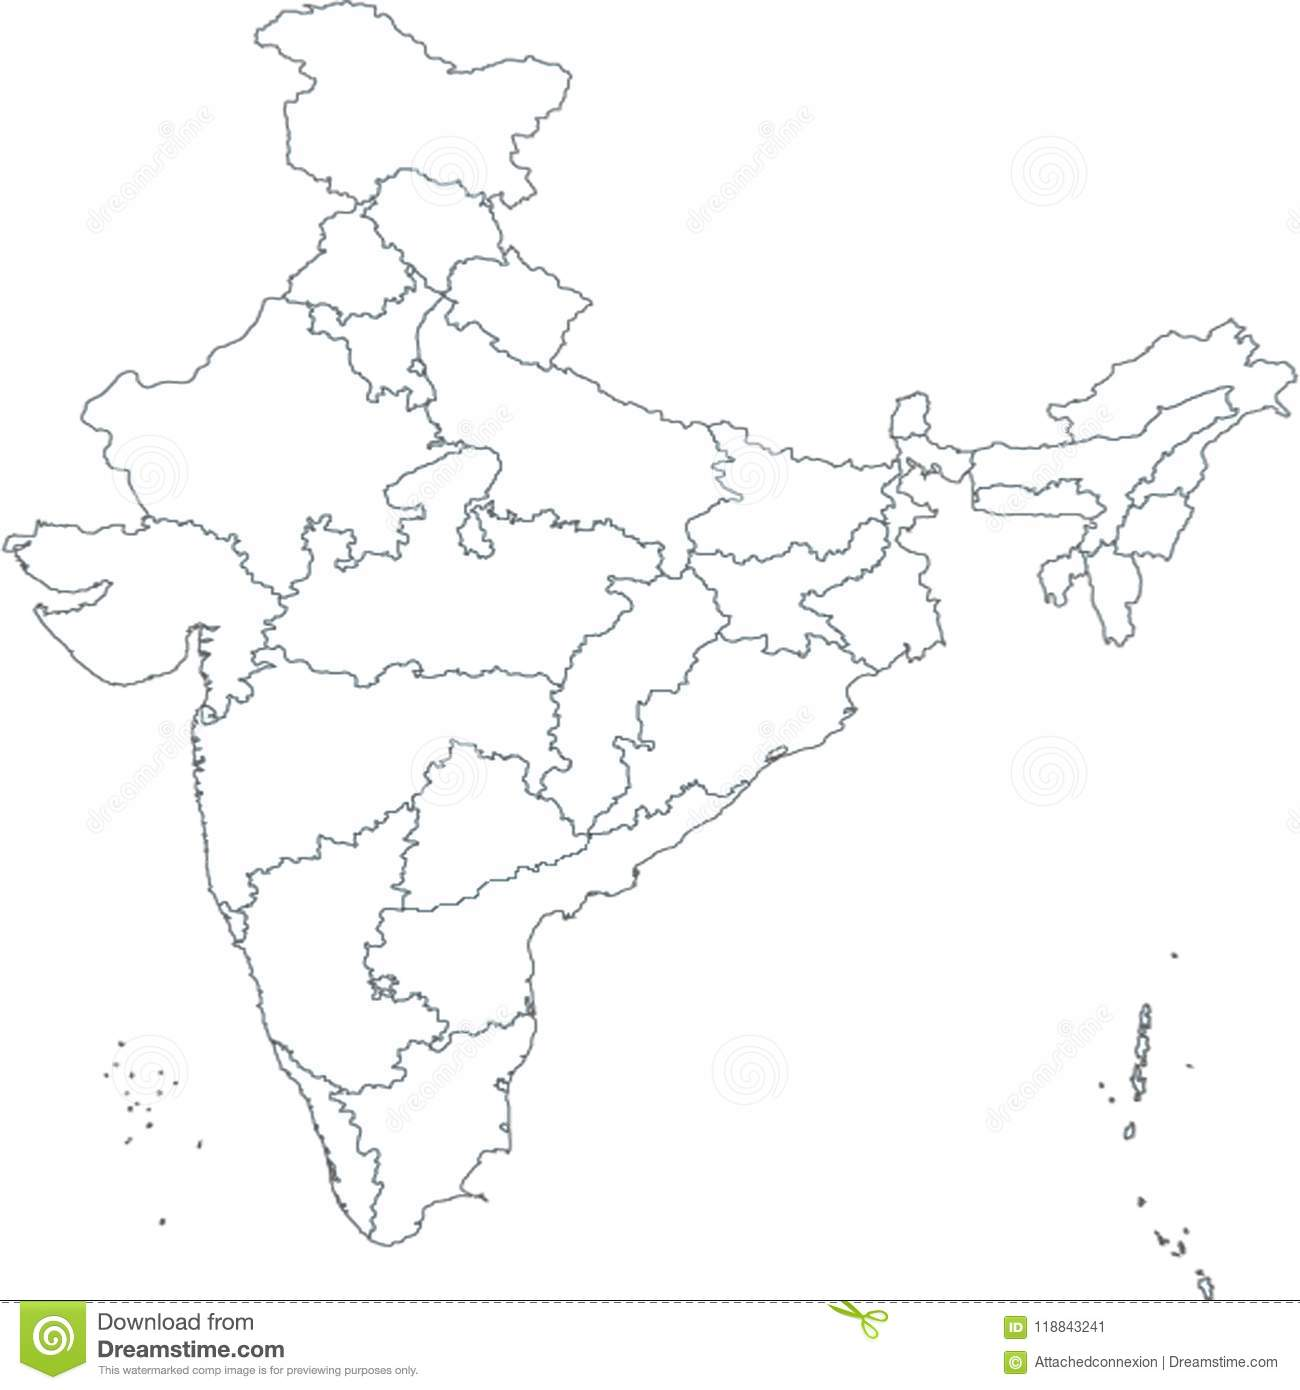 Map Of India Asia With All States And Country Boundary